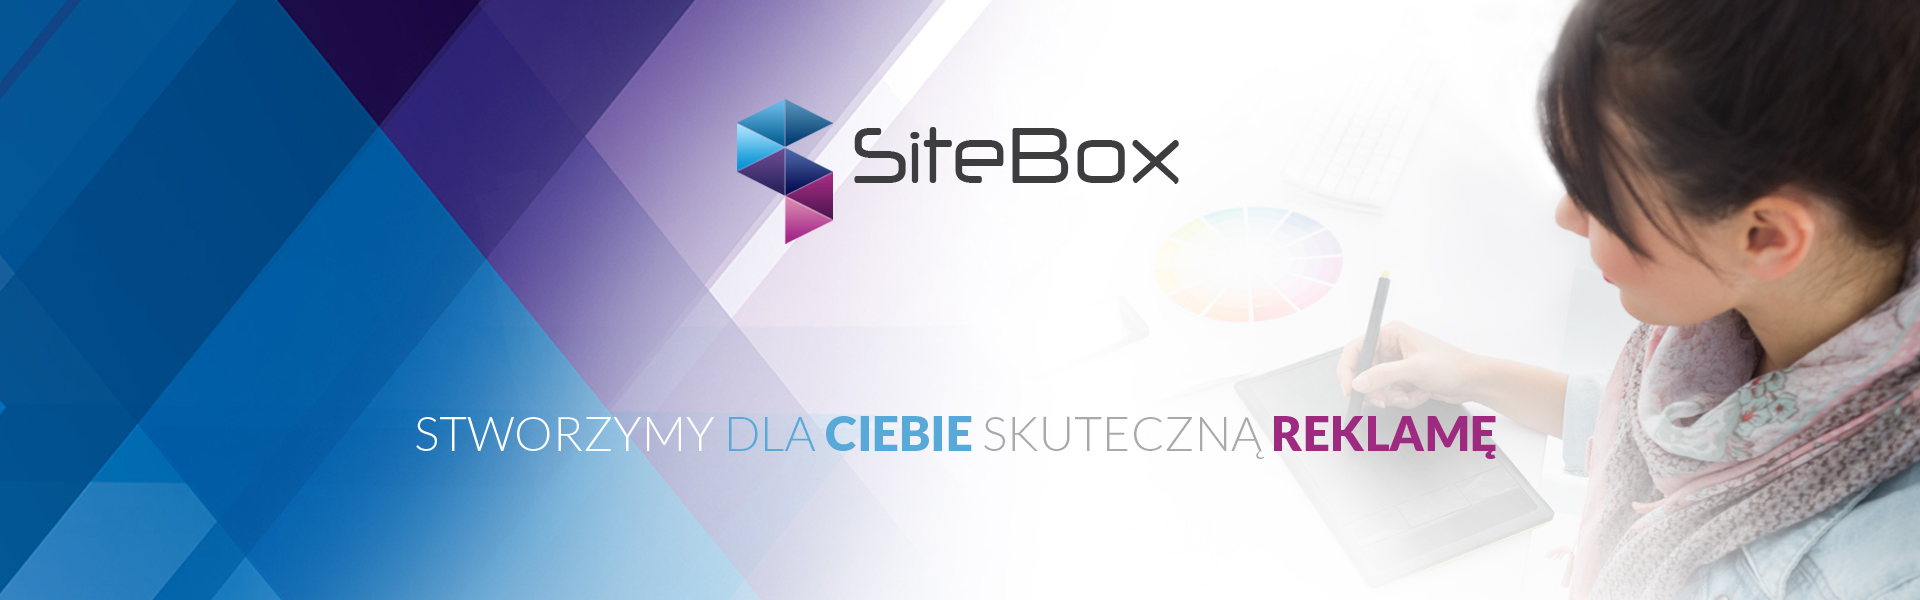 sitebox-reklama-miedzyrzec